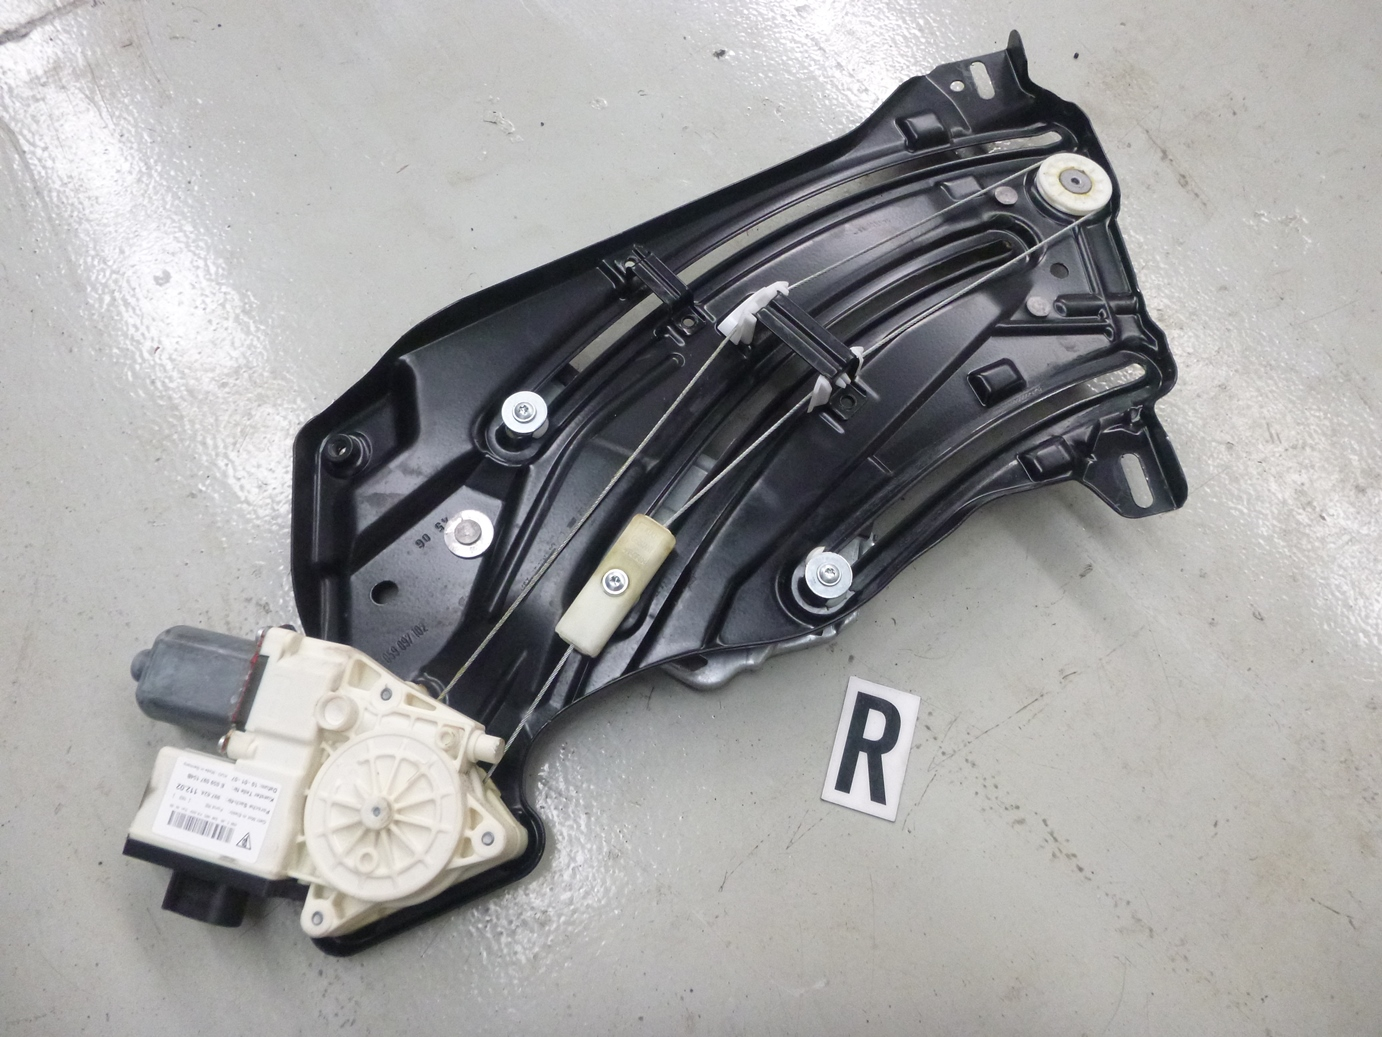 Porsche-911-997-Carrera-S-Cabriolet-2007-Power-Window-Motor-Rear-RHS-J041